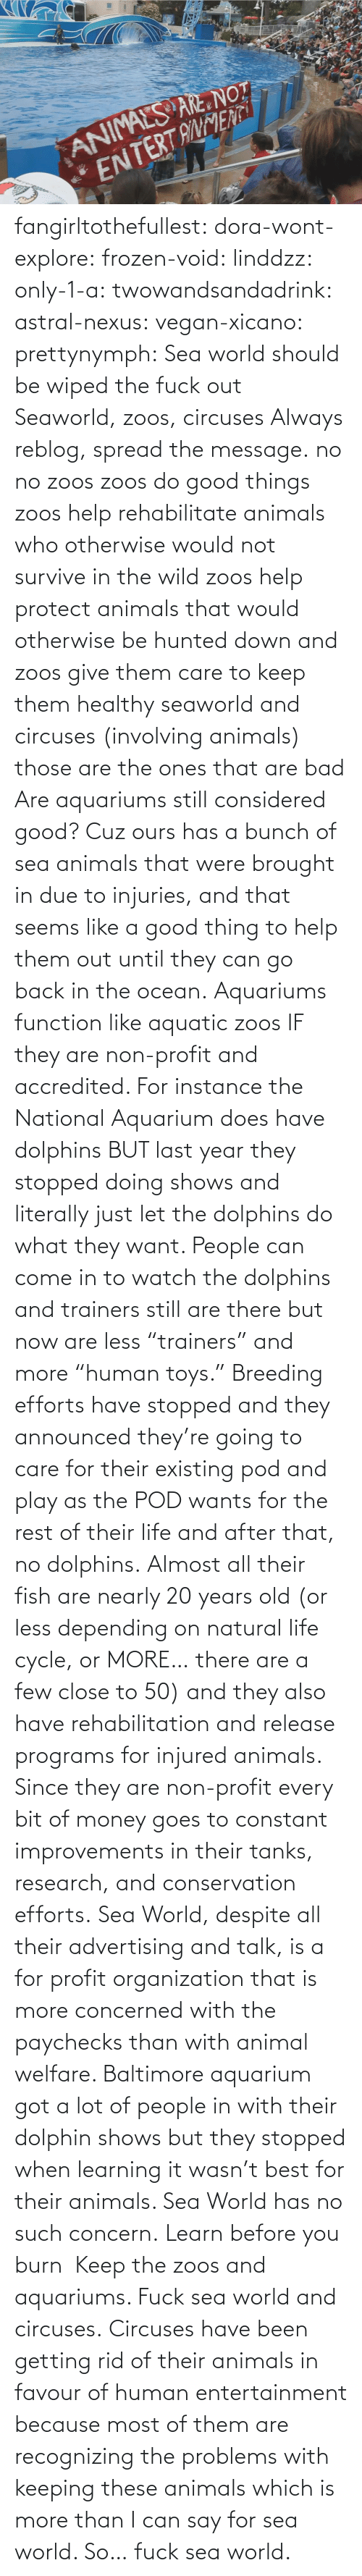 "otherwise: fangirltothefullest:  dora-wont-explore:  frozen-void:  linddzz:  only-1-a:  twowandsandadrink:  astral-nexus:  vegan-xicano:  prettynymph:  Sea world should be wiped the fuck out  Seaworld, zoos, circuses  Always reblog, spread the message.  no no zoos zoos do good things zoos help rehabilitate animals who otherwise would not survive in the wild zoos help protect animals that would otherwise be hunted down and zoos give them care to keep them healthy seaworld and circuses (involving animals) those are the ones that are bad  Are aquariums still considered good? Cuz ours has a bunch of sea animals that were brought in due to injuries, and that seems like a good thing to help them out until they can go back in the ocean.  Aquariums function like aquatic zoos IF they are non-profit and accredited. For instance the National Aquarium does have dolphins BUT last year they stopped doing shows and literally just let the dolphins do what they want. People can come in to watch the dolphins and trainers still are there but now are less ""trainers"" and more ""human toys."" Breeding efforts have stopped and they announced they're going to care for their existing pod and play as the POD wants for the rest of their life and after that, no dolphins. Almost all their fish are nearly 20 years old (or less depending on natural life cycle, or MORE… there are a few close to 50) and they also have rehabilitation and release programs for injured animals. Since they are non-profit every bit of money goes to constant improvements in their tanks, research, and conservation efforts. Sea World, despite all their advertising and talk, is a for profit organization that is more concerned with the paychecks than with animal welfare. Baltimore aquarium got a lot of people in with their dolphin shows but they stopped when learning it wasn't best for their animals. Sea World has no such concern.  Learn before you burn   Keep the zoos and aquariums. Fuck sea world and circuses.  Circuses have been getting rid of  their animals in favour of human entertainment because most of them are recognizing the problems with keeping these animals which is more than I can say for sea world. So… fuck sea world."